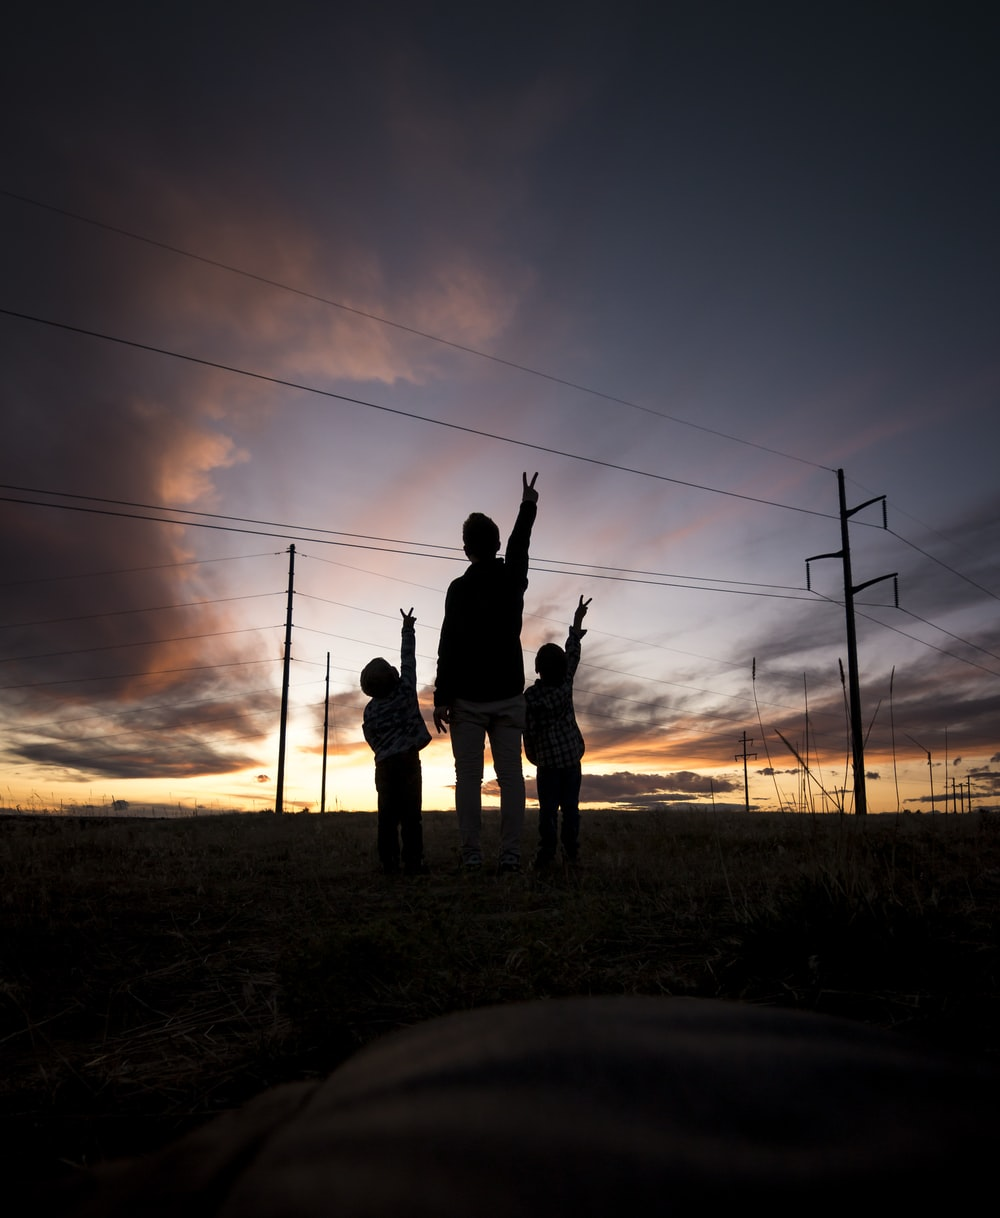 silhouette of three person during daytime